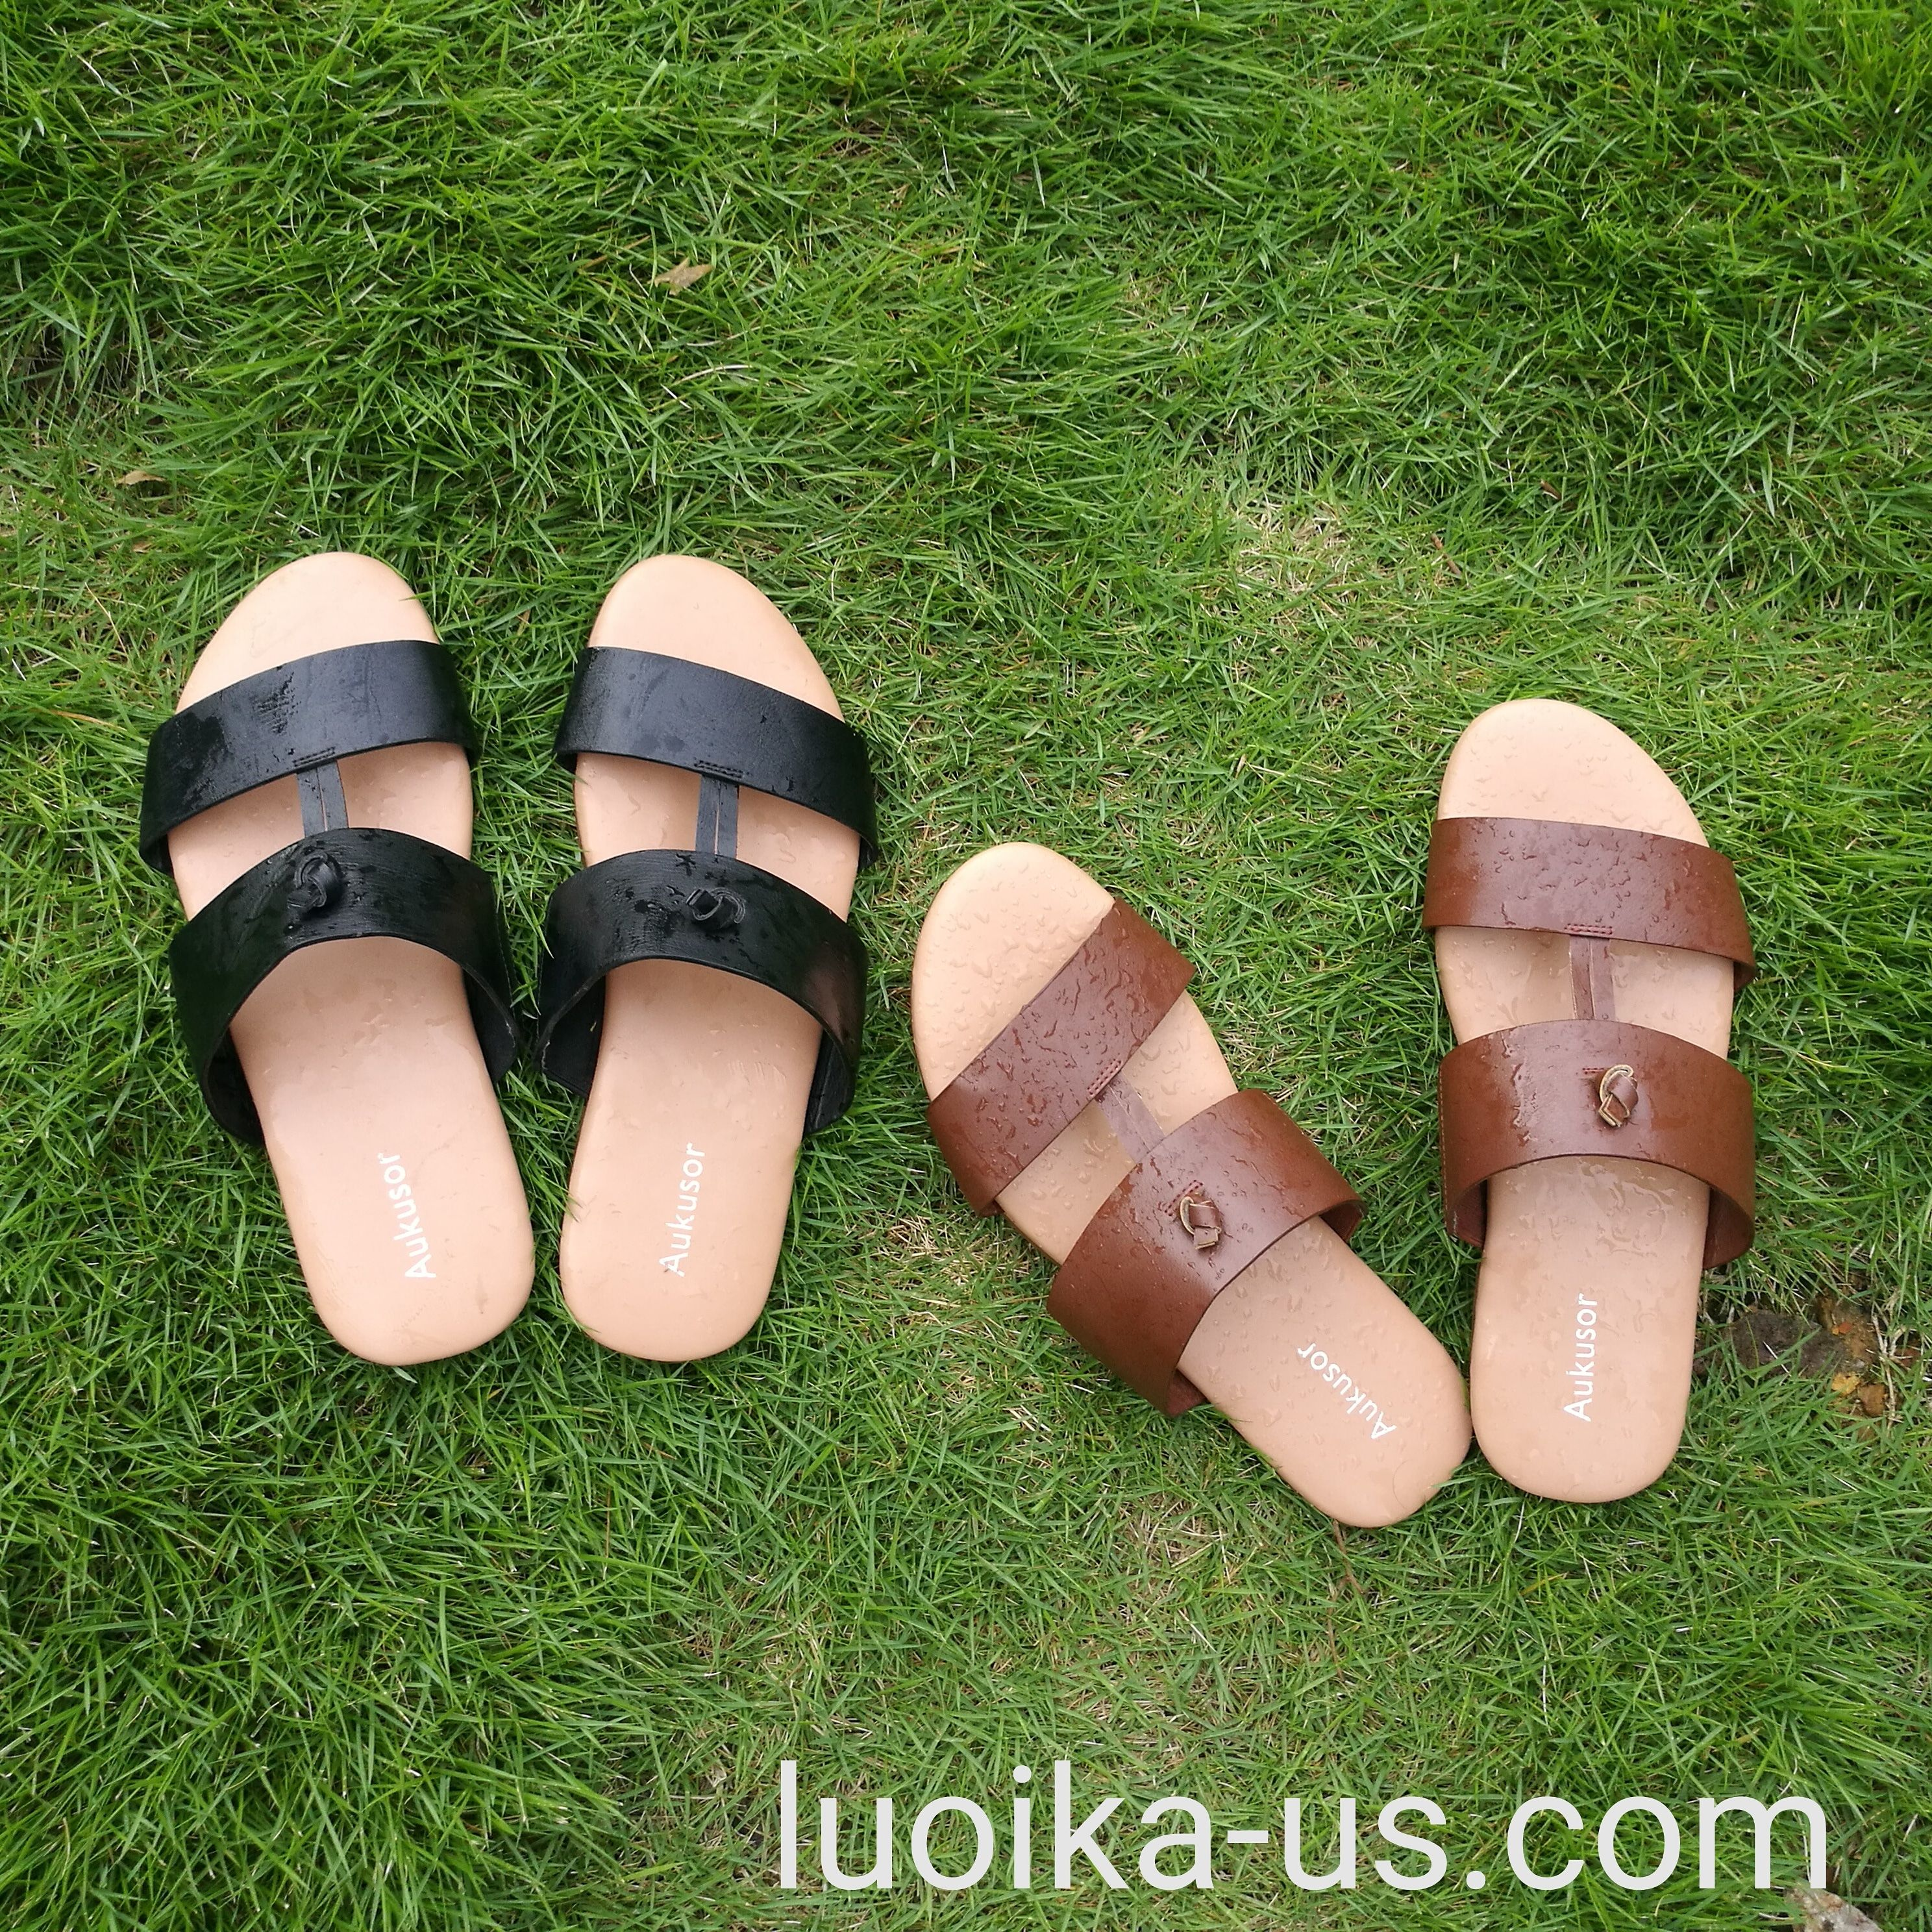 46a07ef73 Aukusor Women s Wide Flat Sandals - Slide Summer Shoes with Two Straps and Memory  Foam Insole